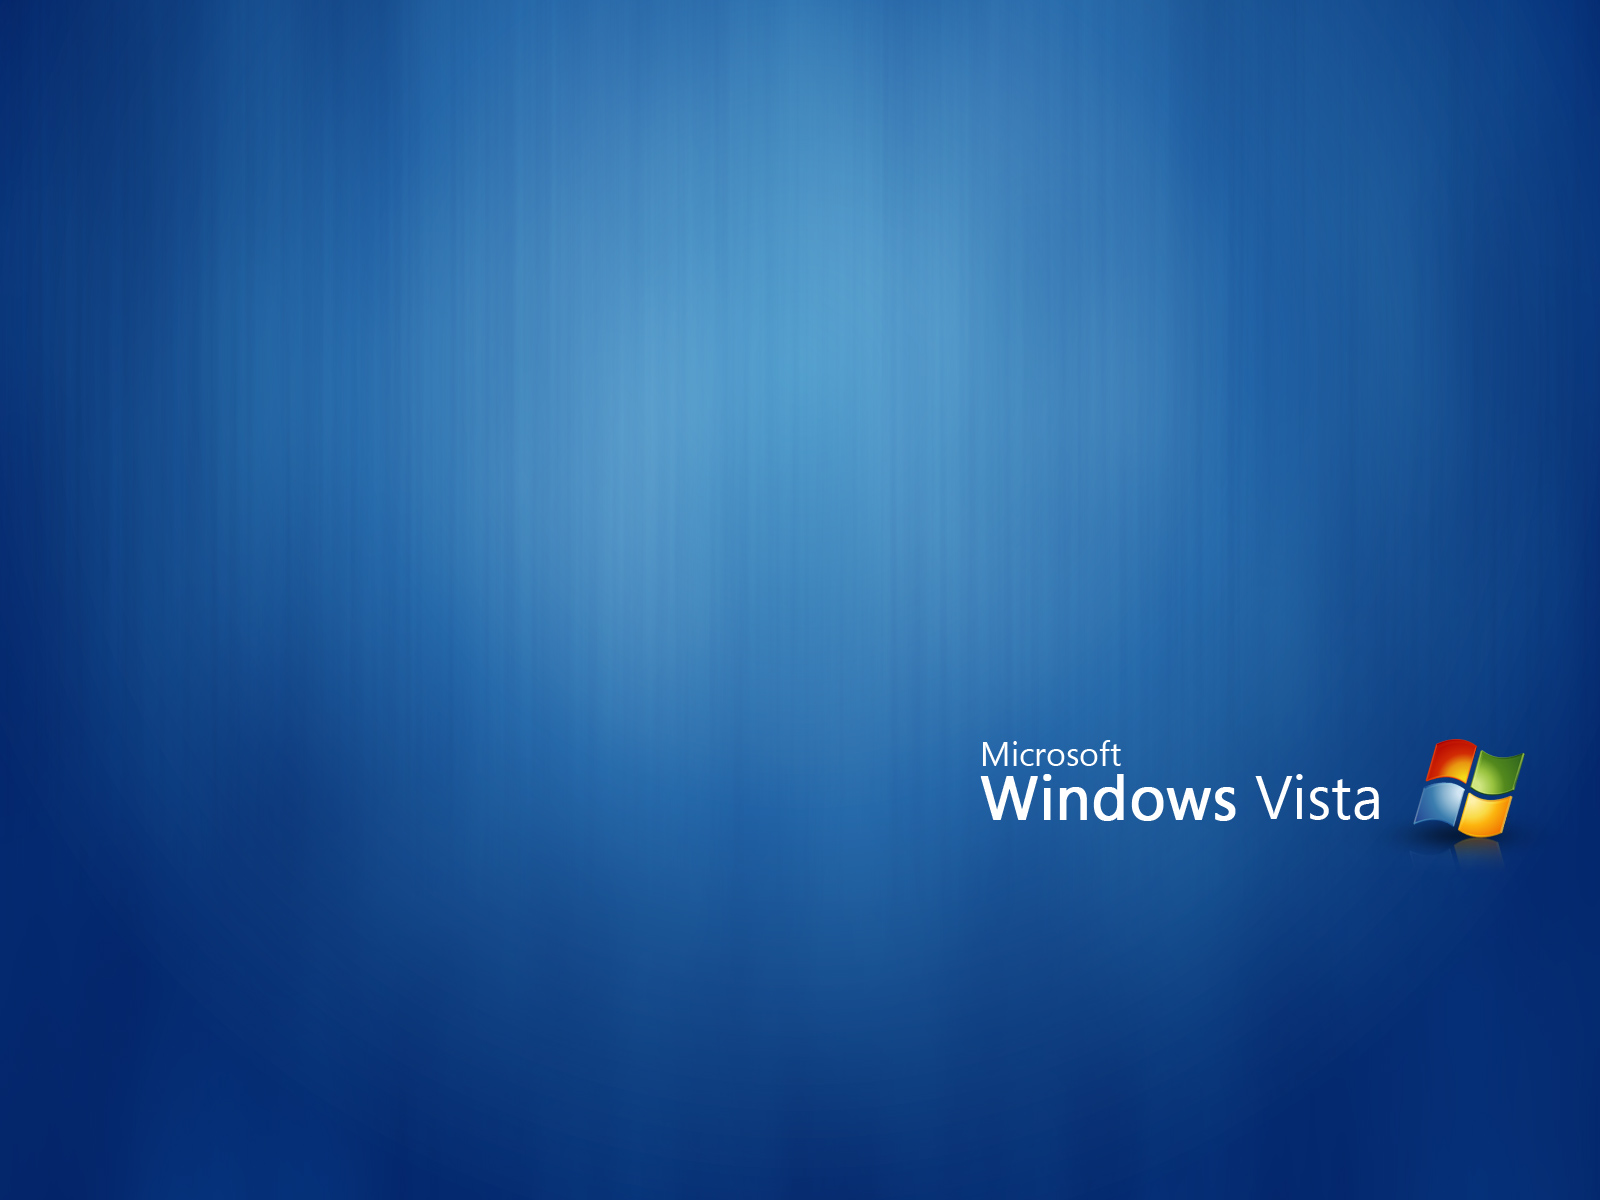 Vista Wallpapers � Vista Home